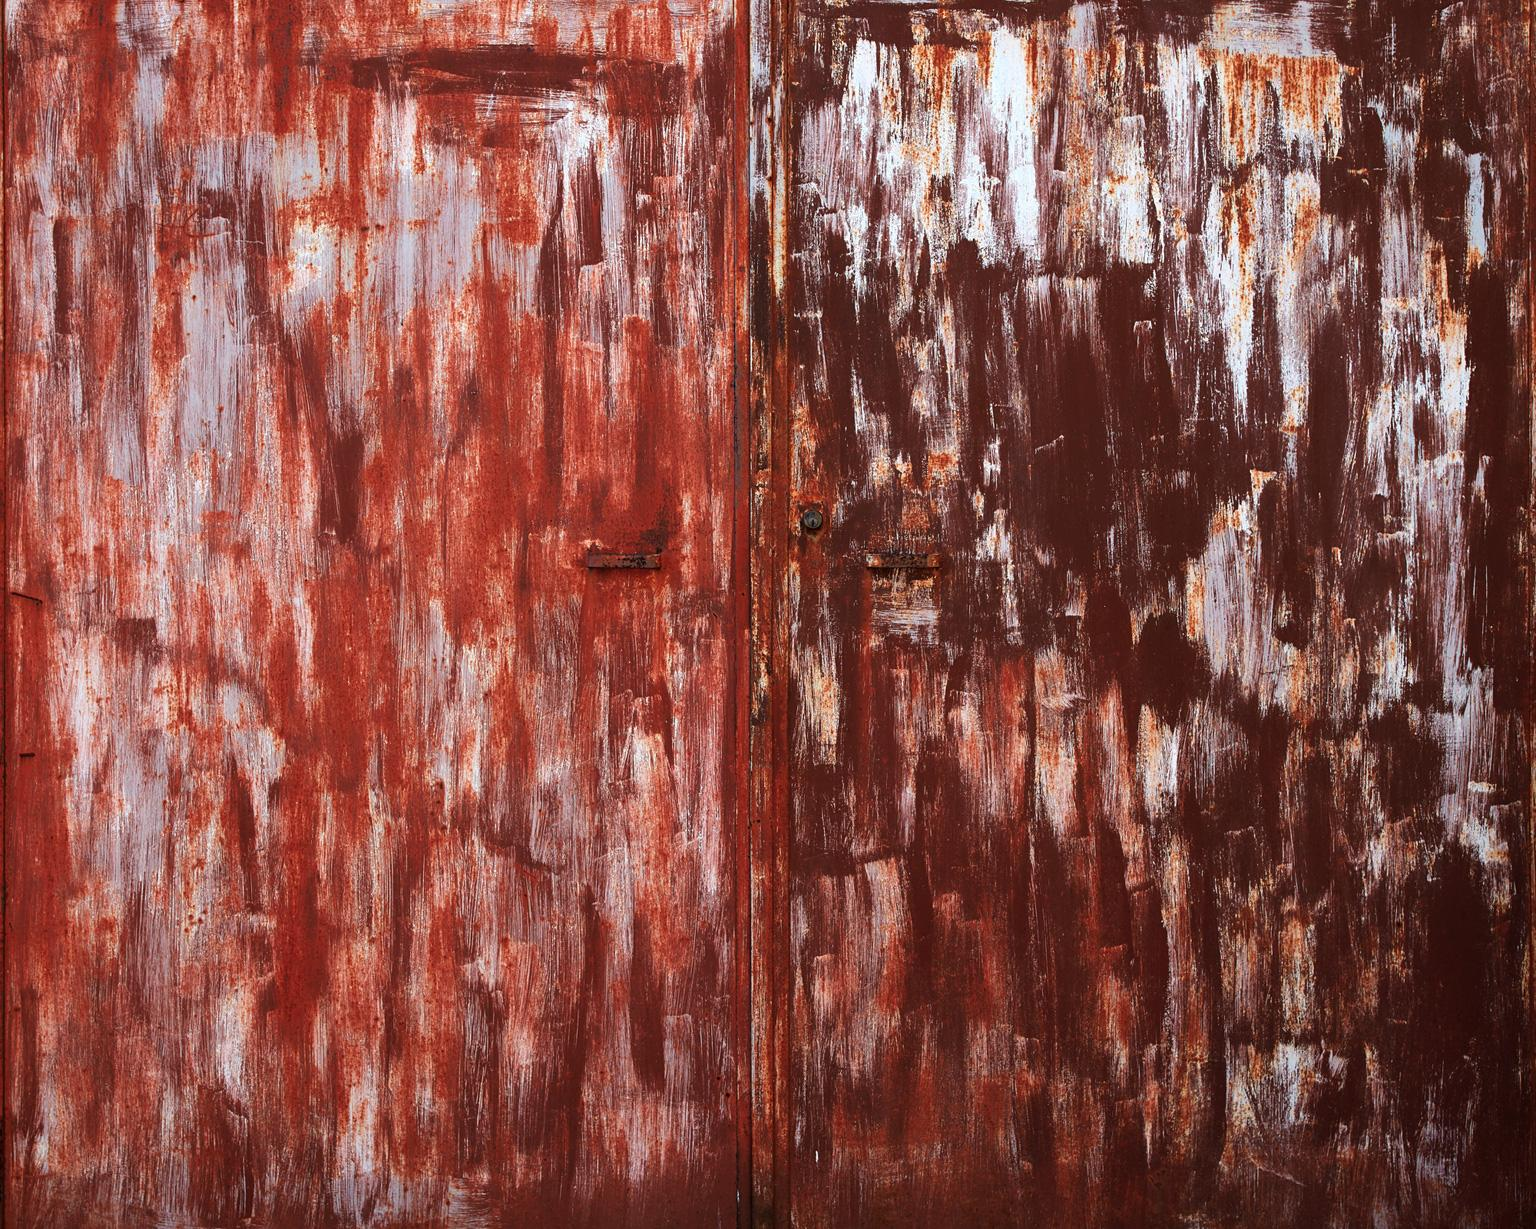 Wallscape II - large format abstract photograph of rust texture surface